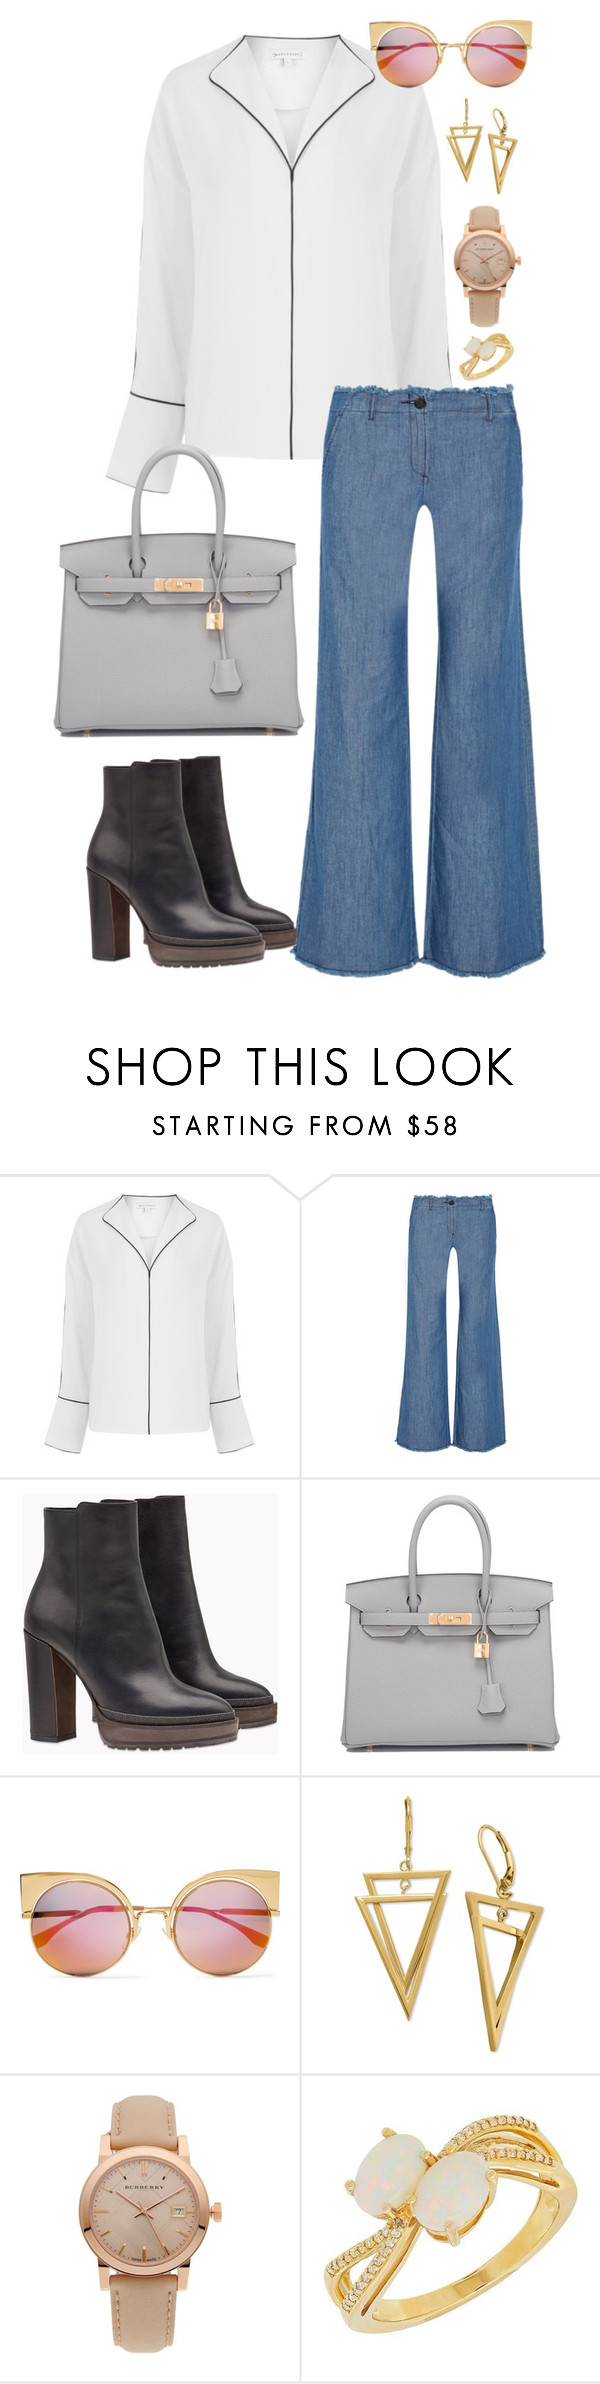 """""""Wide Pants"""" by acacia97 ❤ liked on Polyvore featuring MICHAEL Michael Kors, Brunello Cucinelli, Hermès, Fendi, Burberry and Lord & Taylor"""